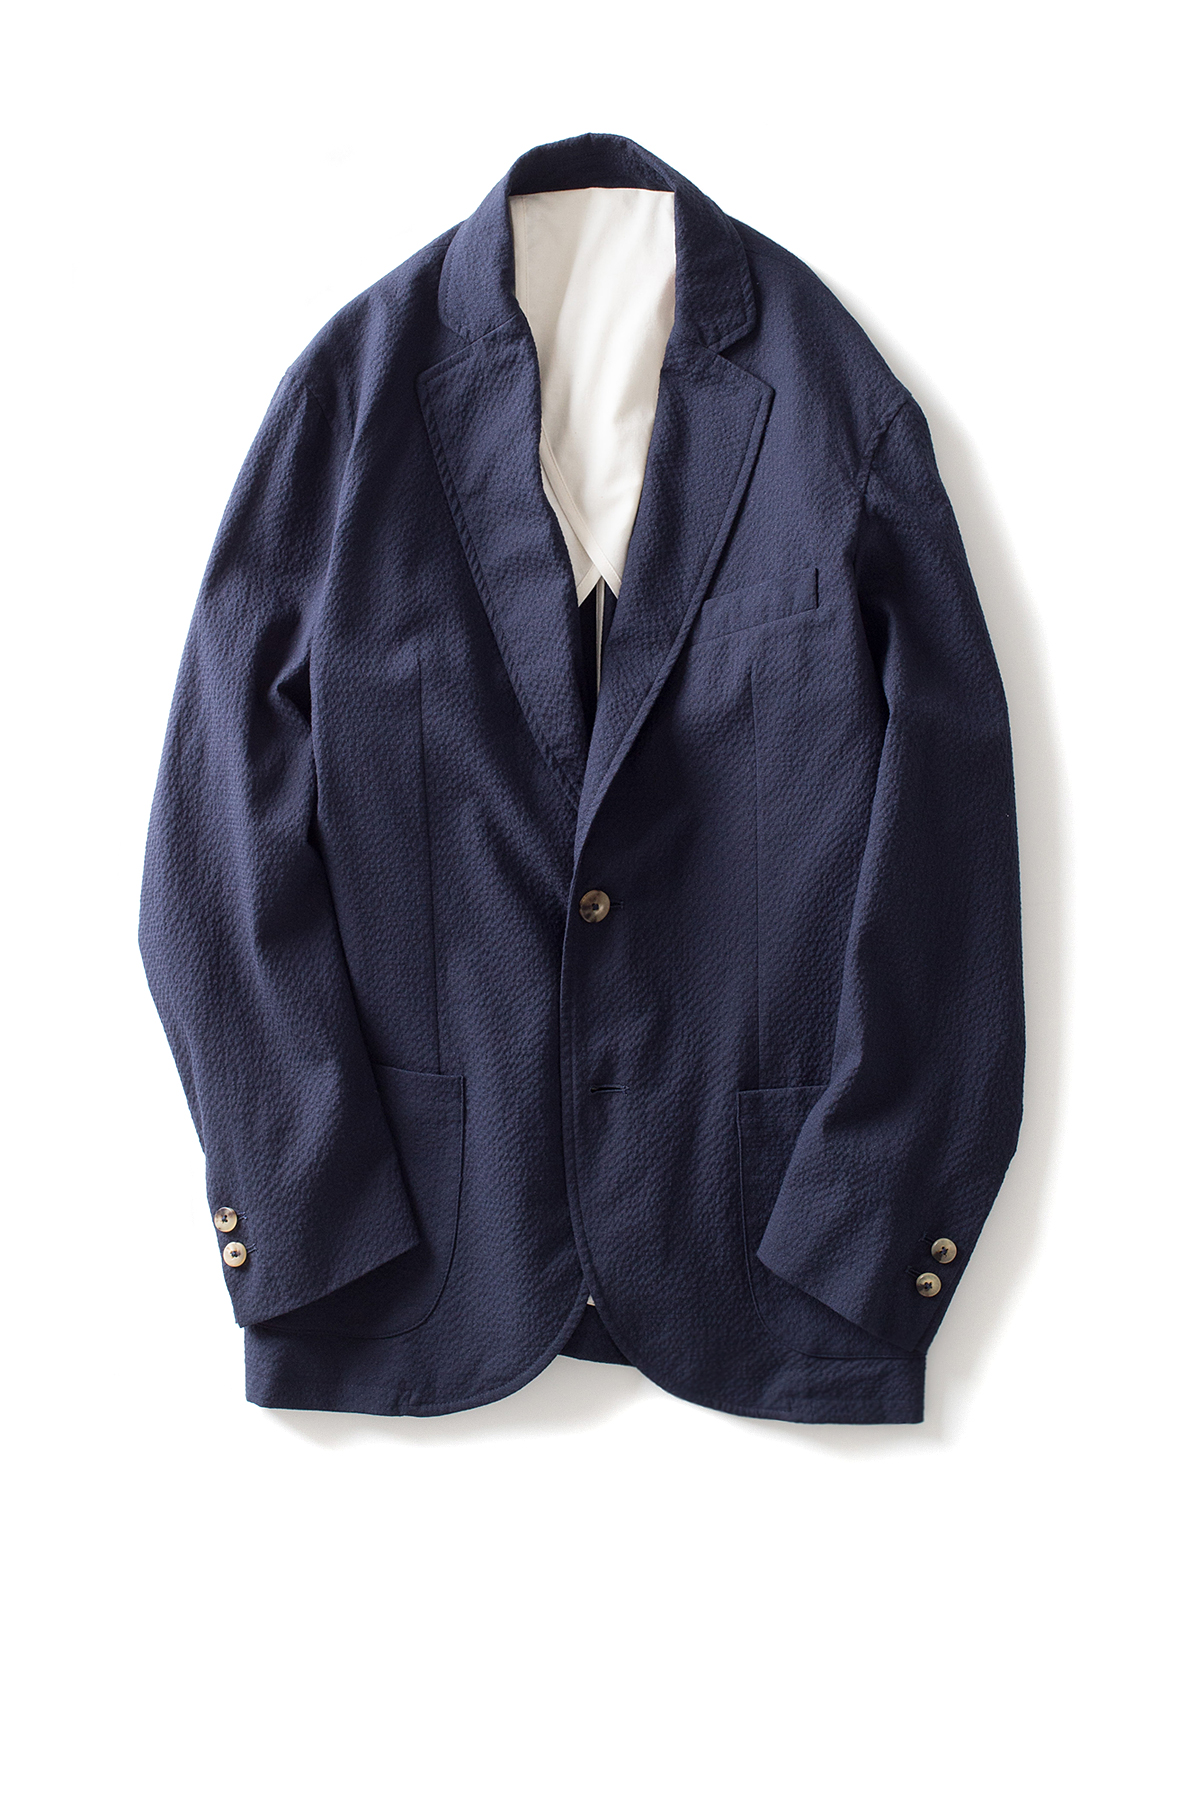 de bonne facture : Sports Jacket (Navy)